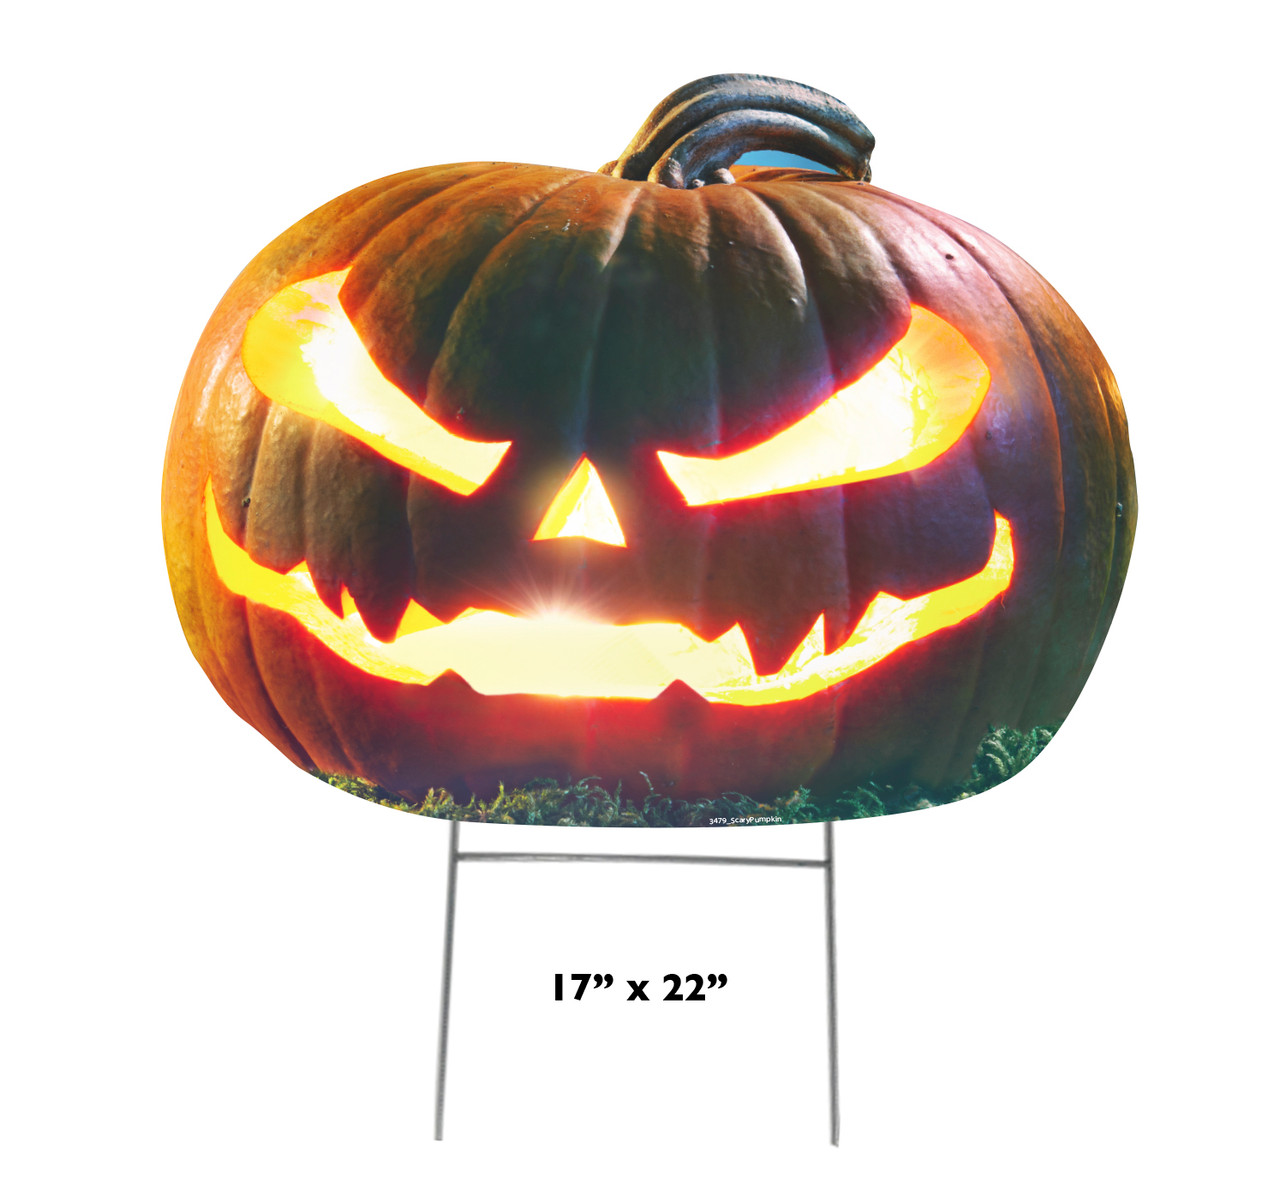 Coroplast outdoor Scary Pumpkin Yard Sign with dimensions.